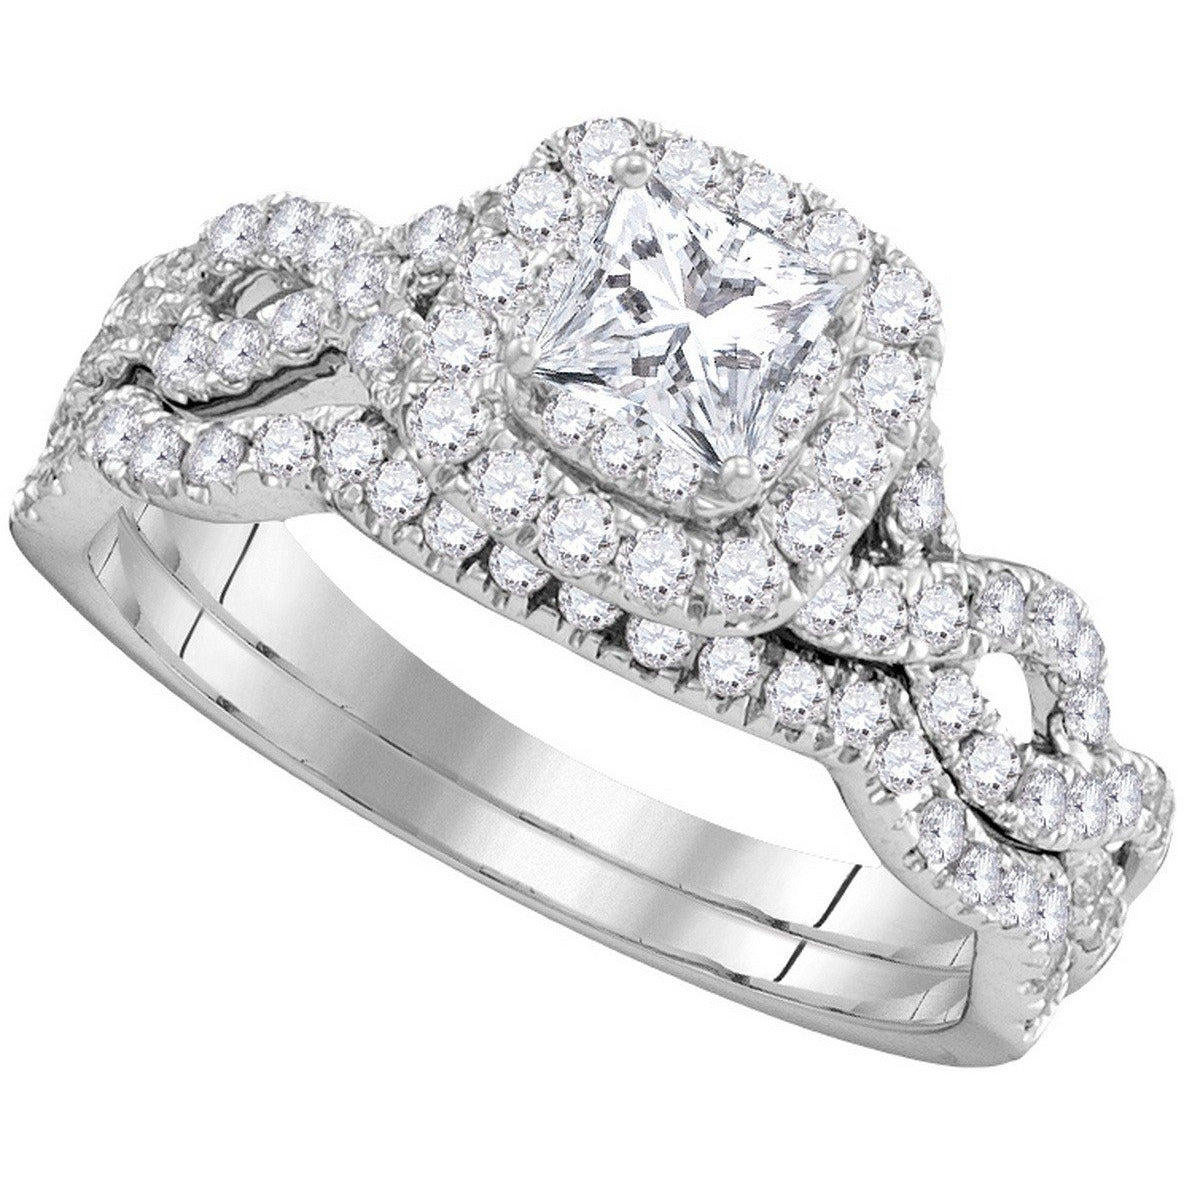 14kt White Gold Womens Princess Diamond Bridal Wedding Engagement Ring Band Set 1.00 Cttw 106339 - shirin-diamonds